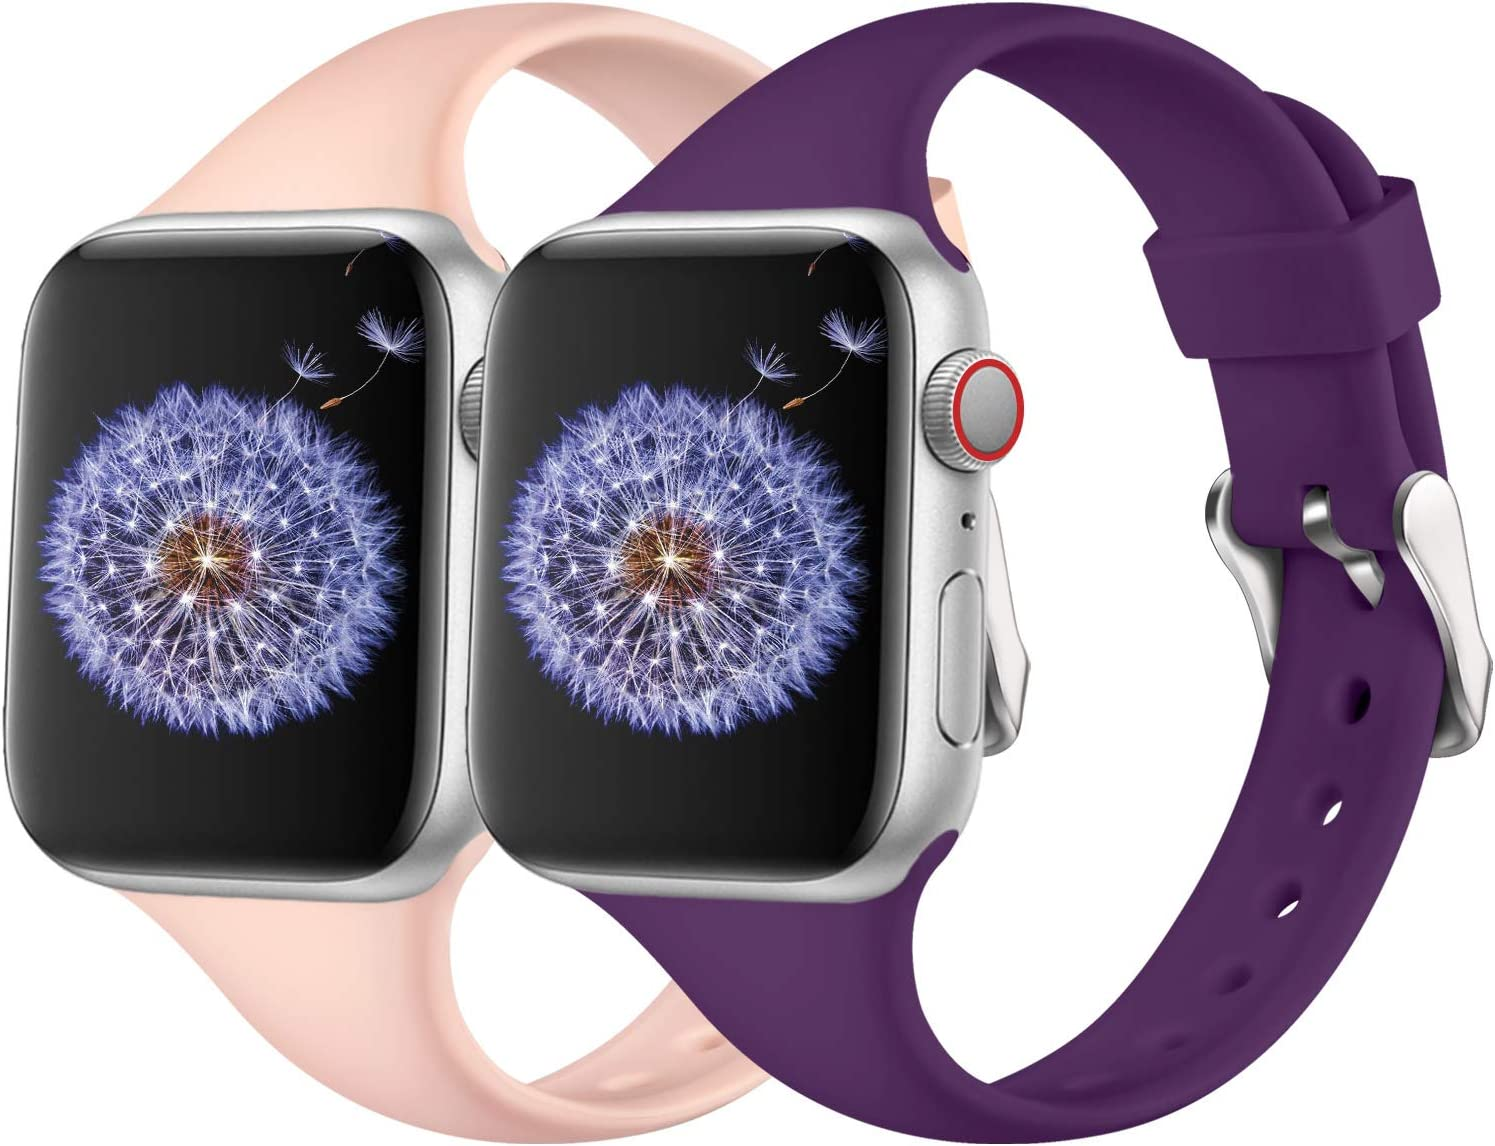 DGege Slim Watch Bands Compatible with Apple Watch 38mm 40mm, Silicone Thinner Bands for iwatch Series 6, 5,4,3,2,1 SE, Purple/Pink, S/M